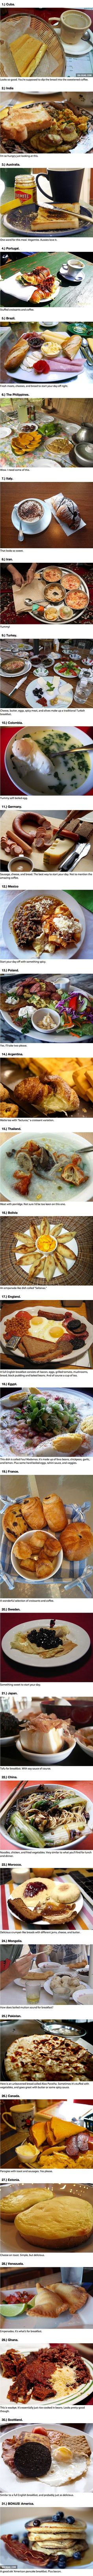 31 Breakfasts From Around The World